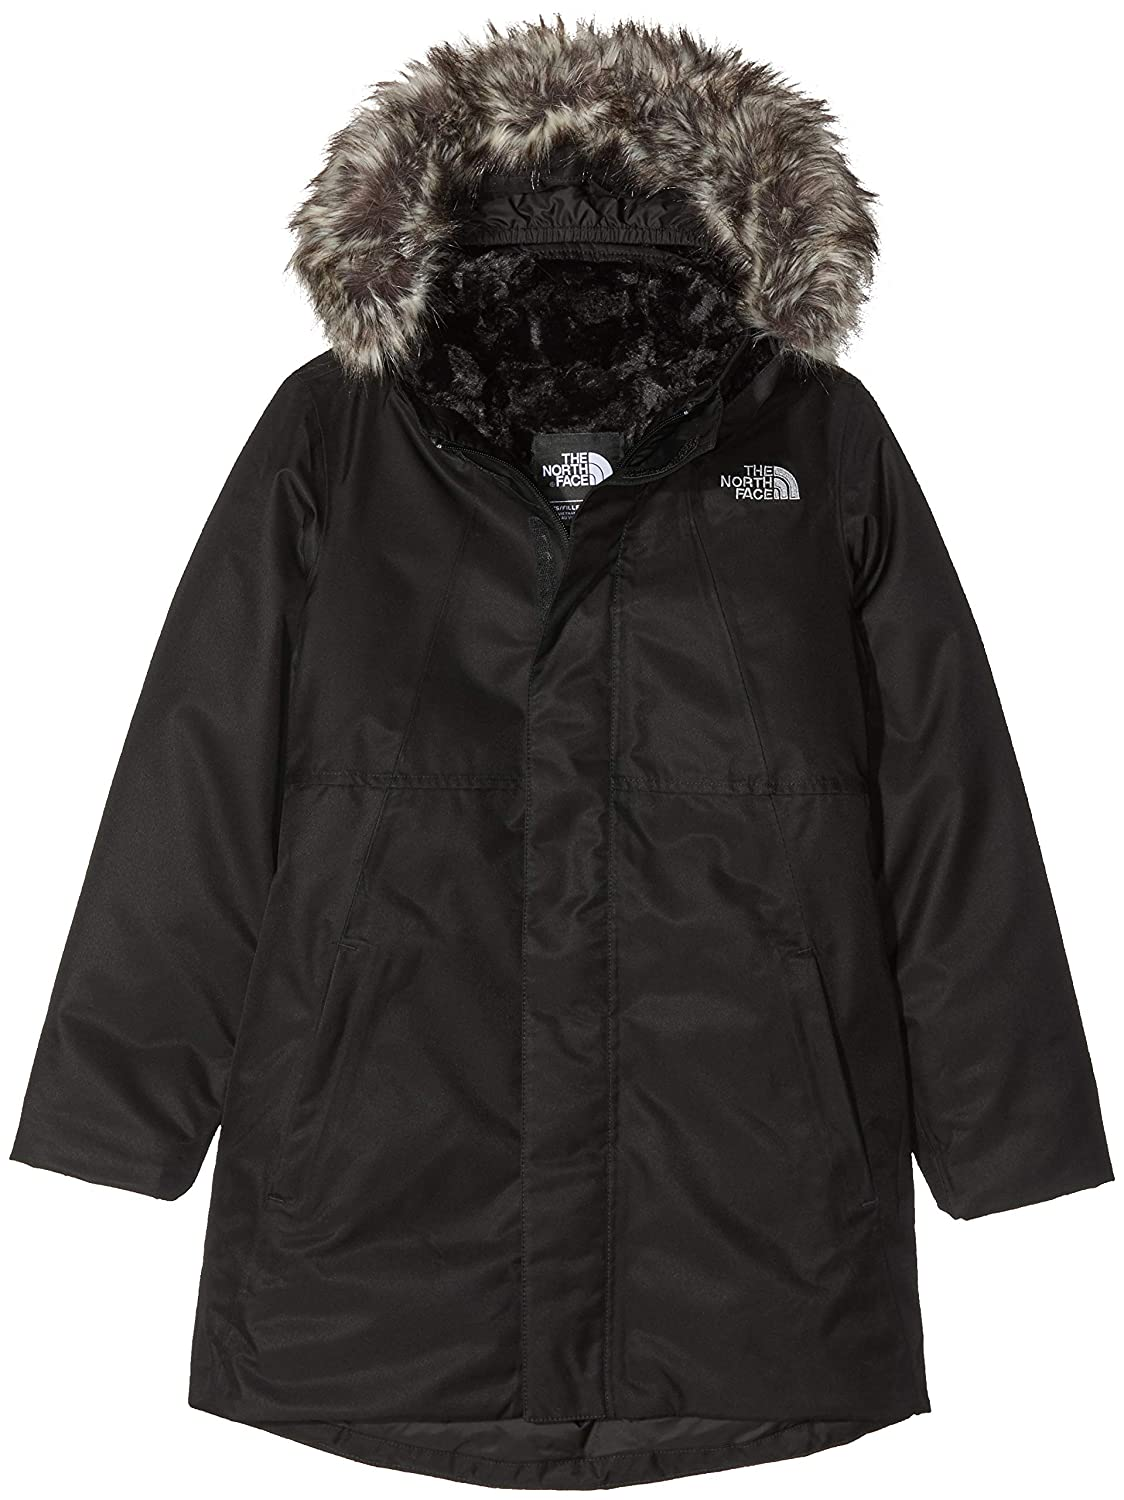 TNF Blk TNF Blk L The North Face Arctic Swirl Veste Fille